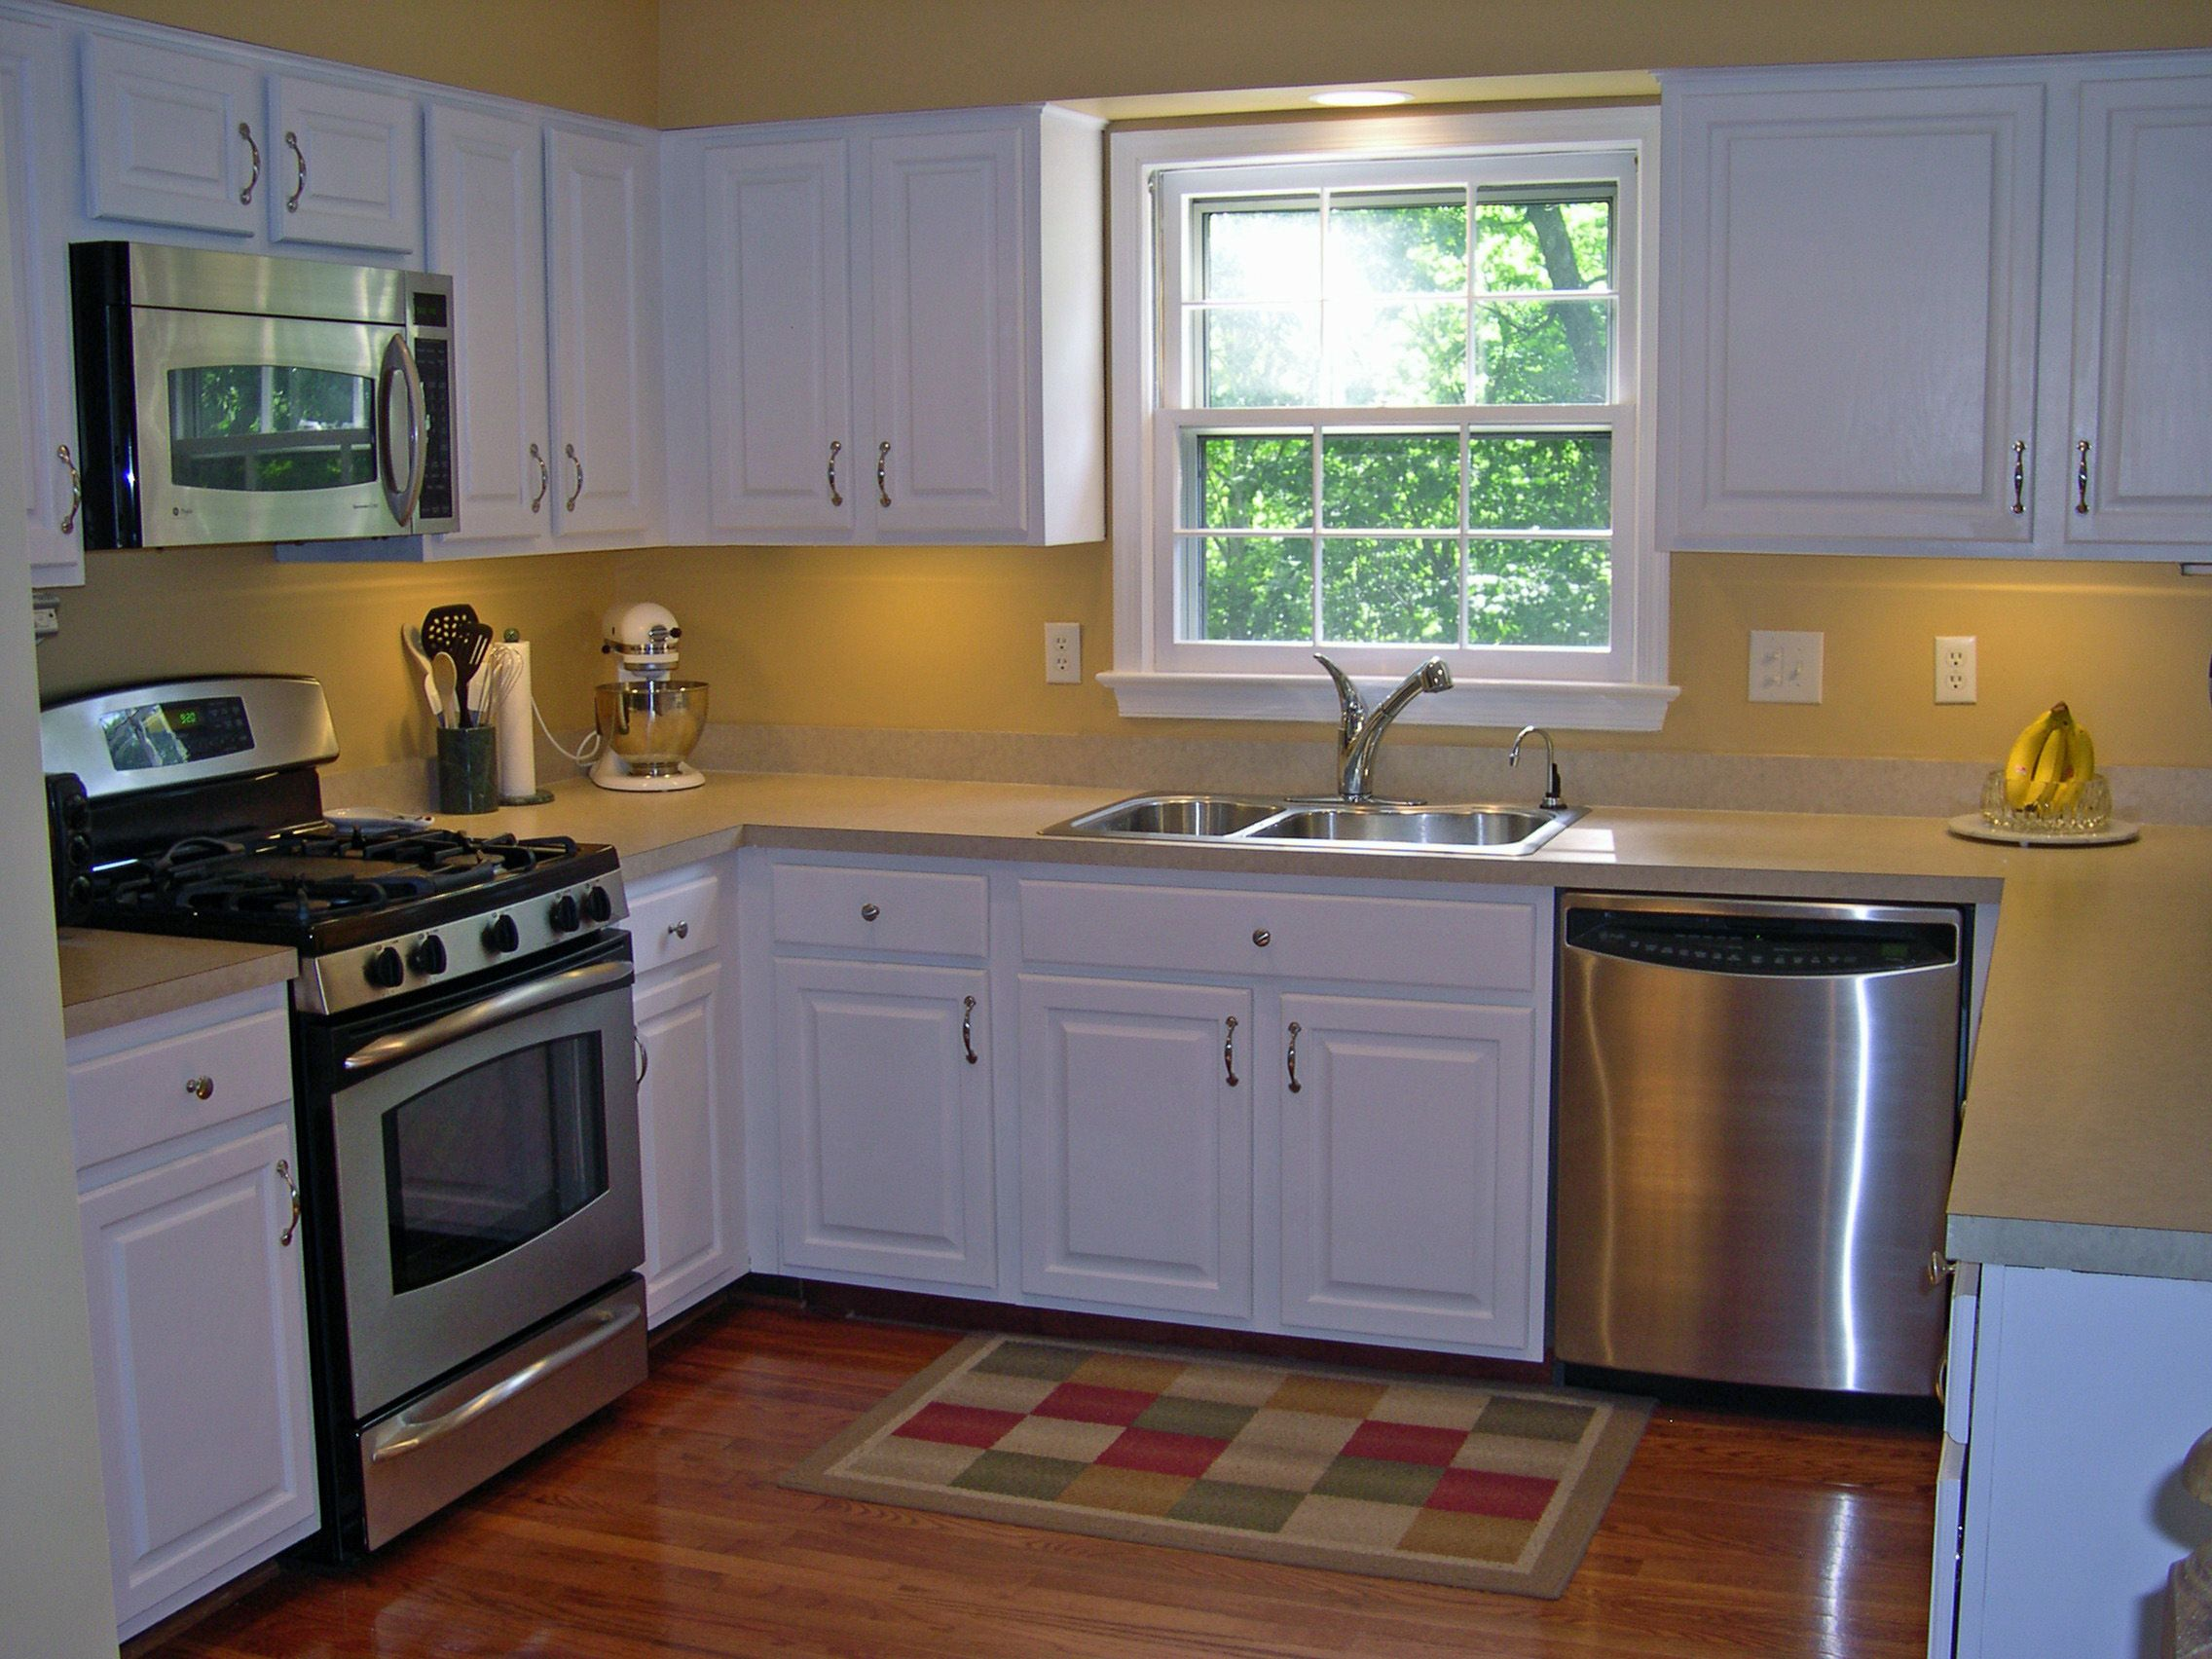 Small Kitchen Remodel Design Enchanting Small Kitchen Remodeling Ideas  Small Kitchen Remodel Ideas Design Inspiration